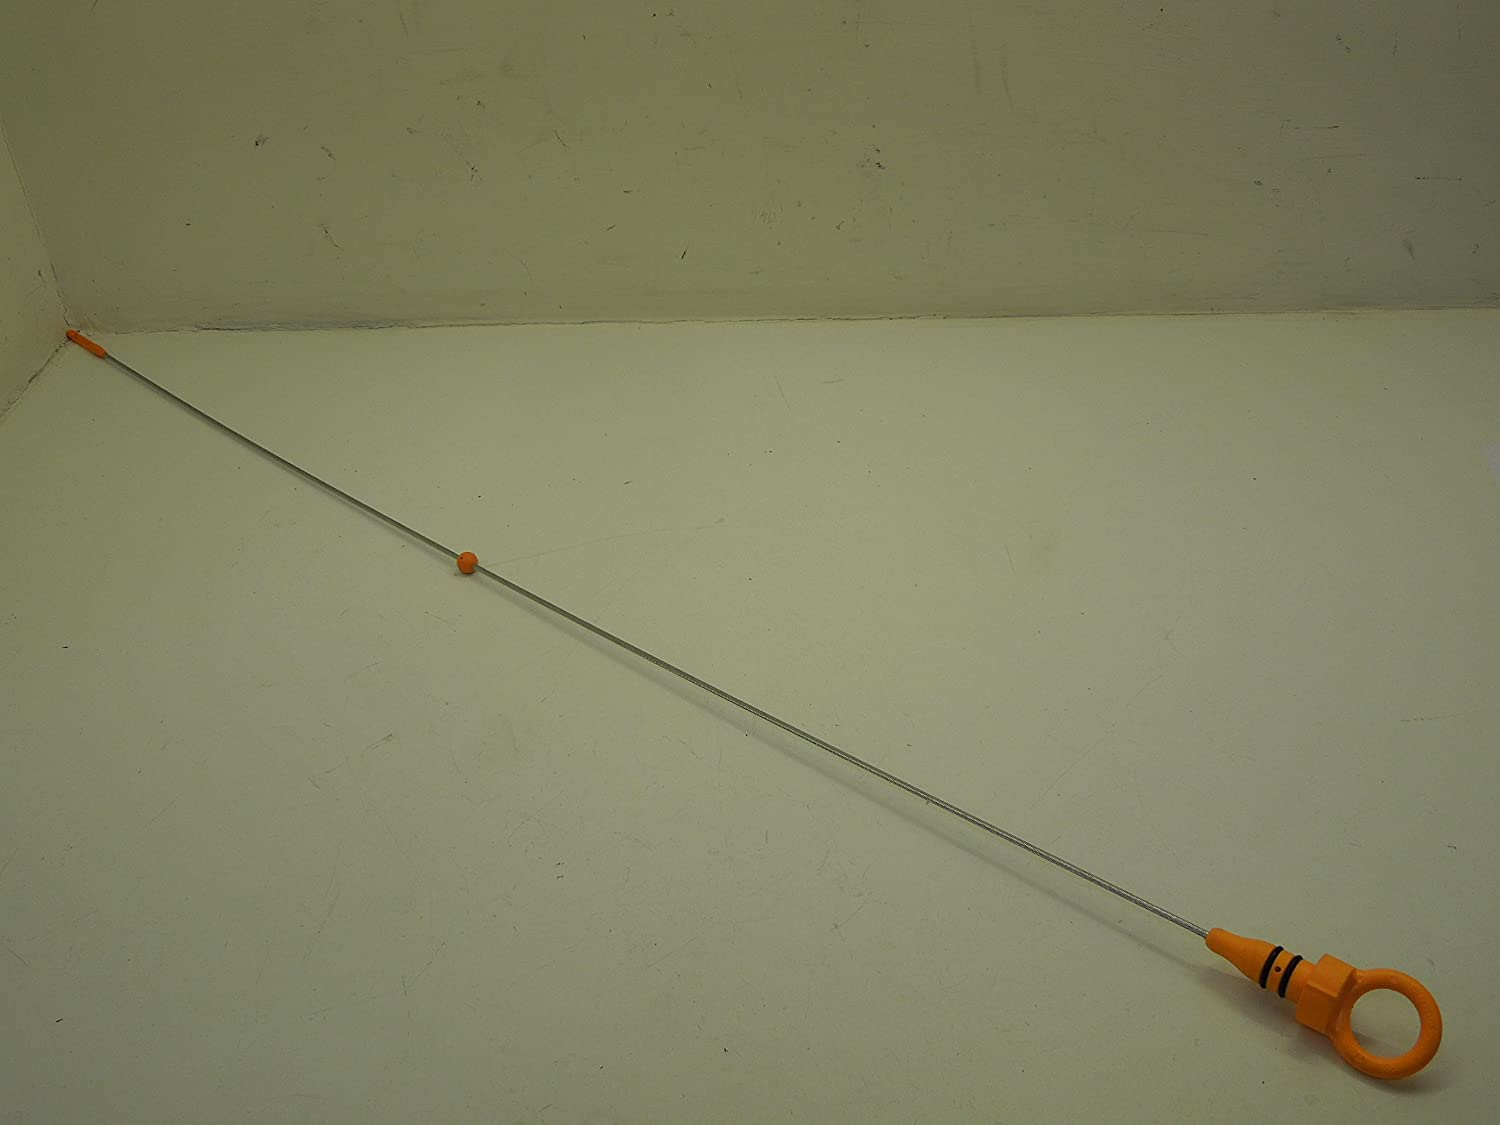 Audi A2 Oil Dipstick Dip Stick For 1.4 TDi Diesel Brand New